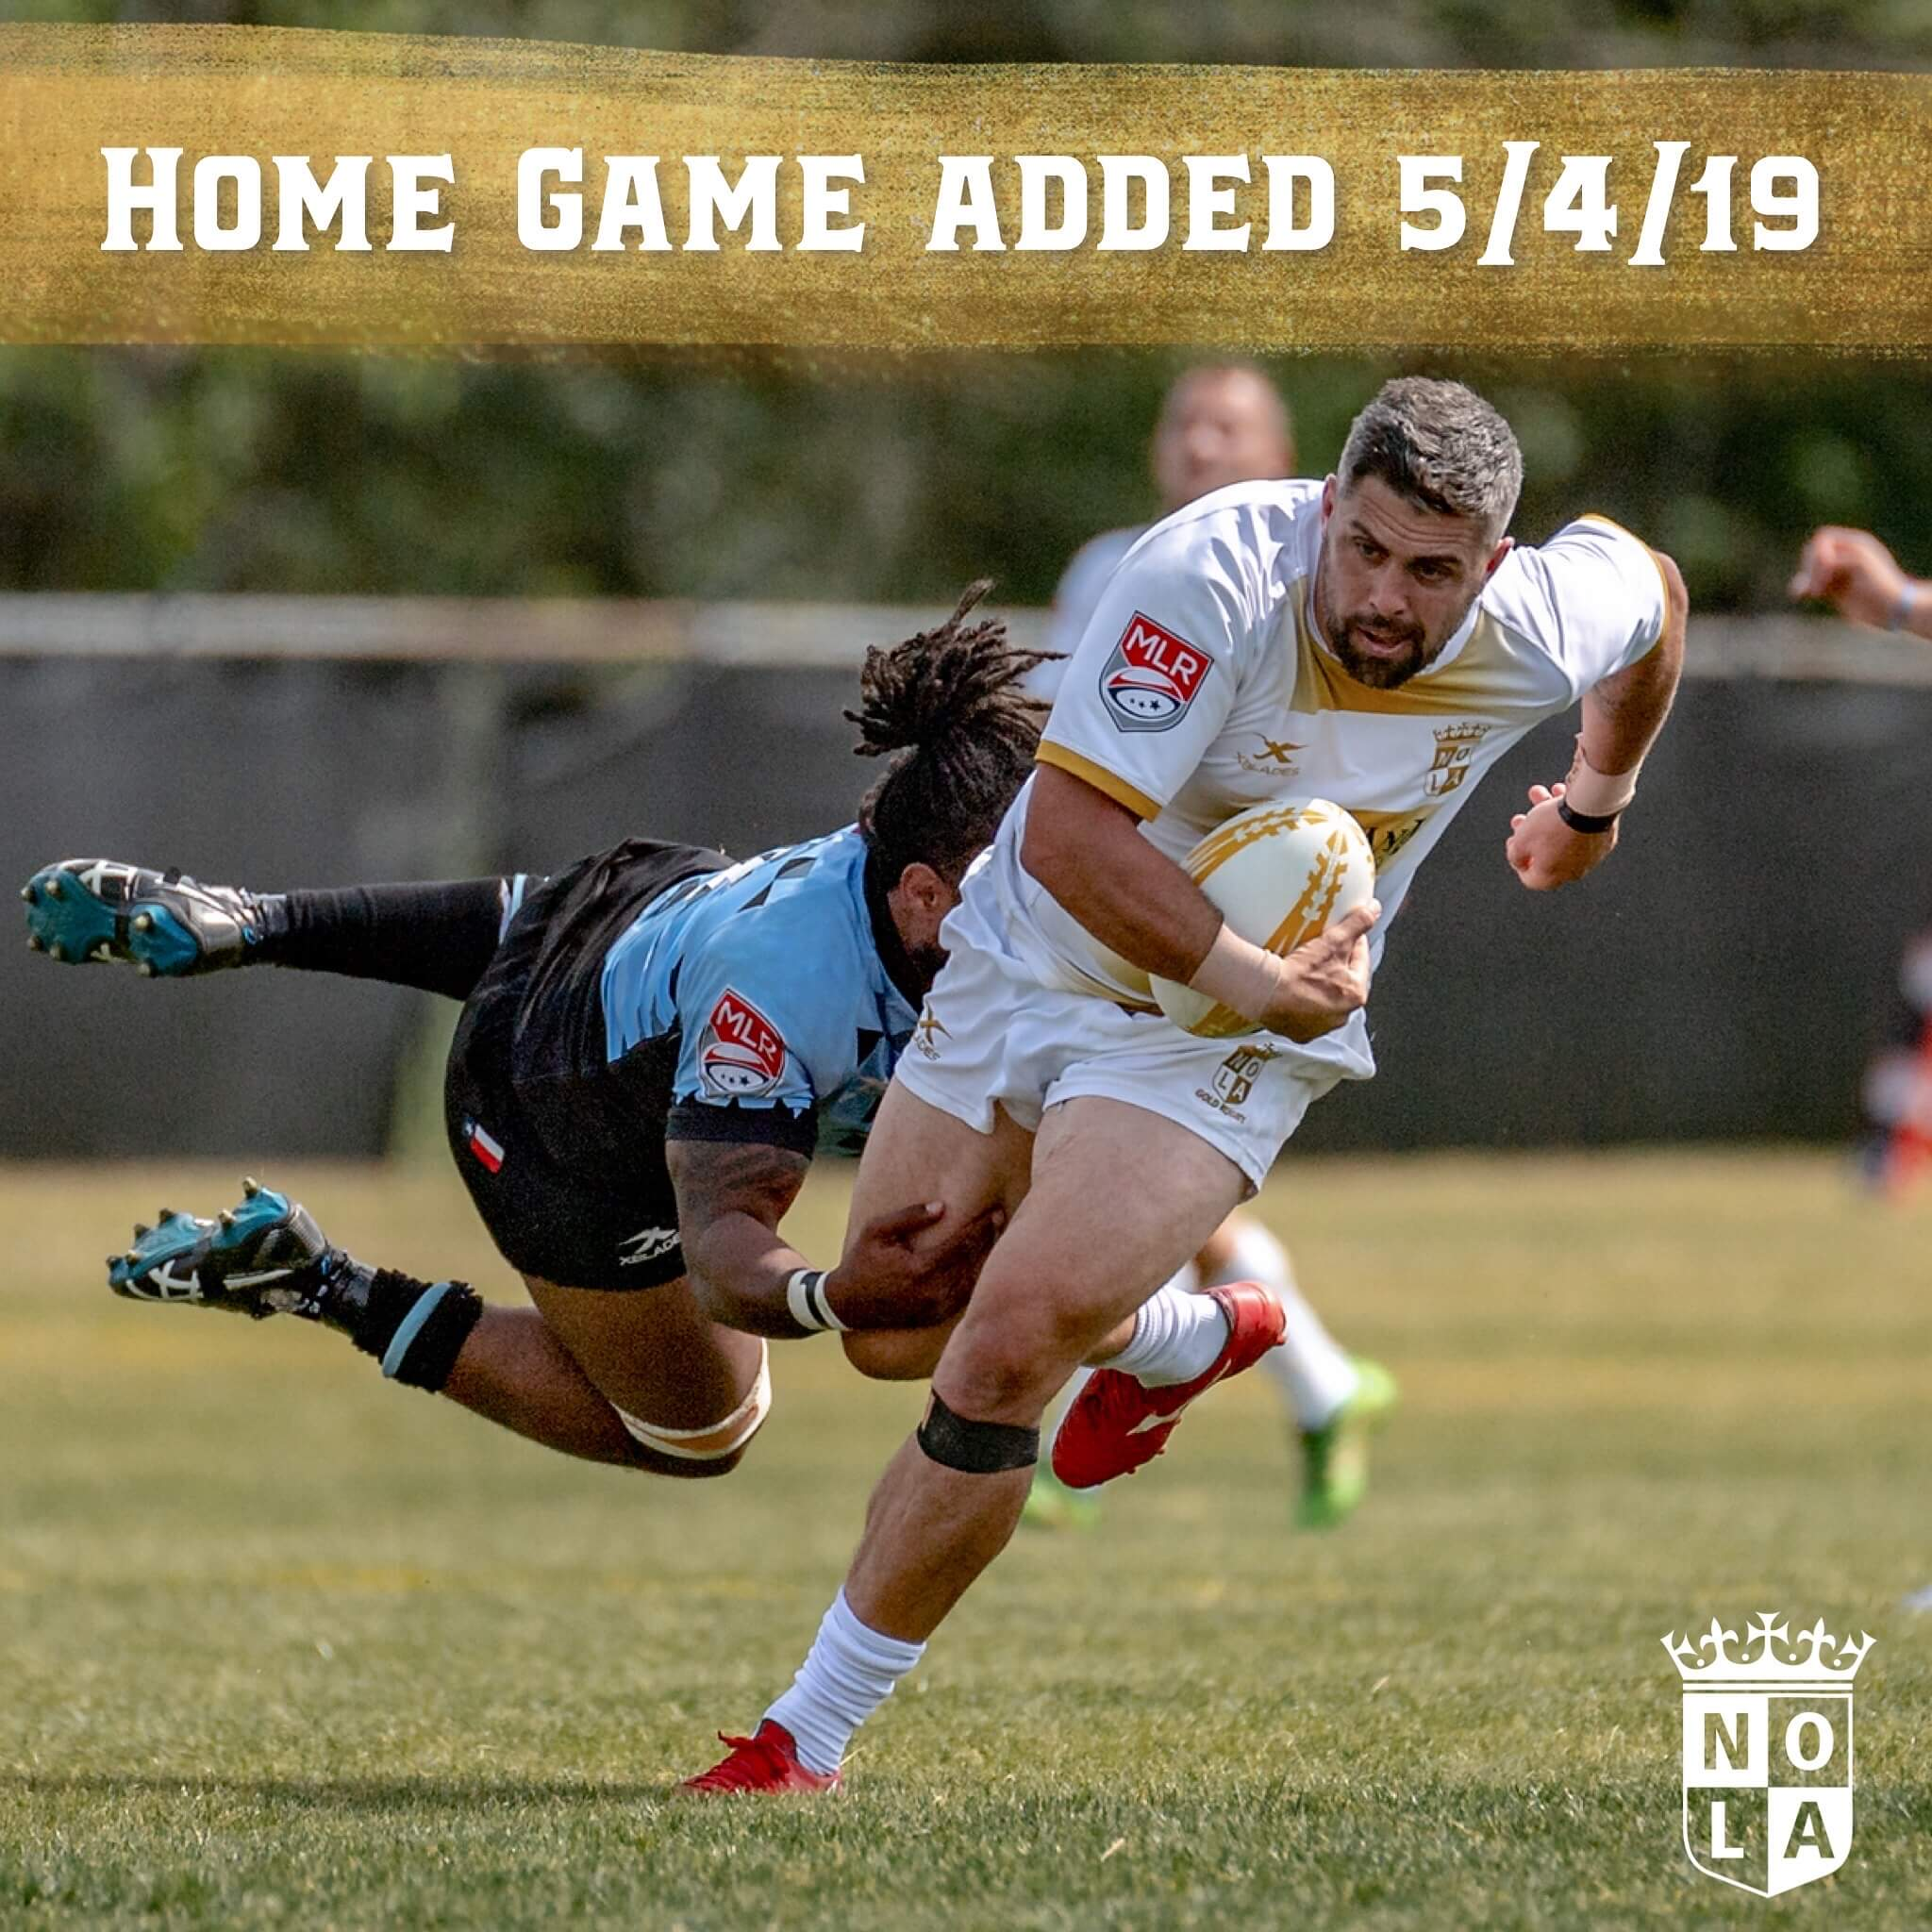 GAME UPDATE: NOLA to host Austin Elite on May 4th